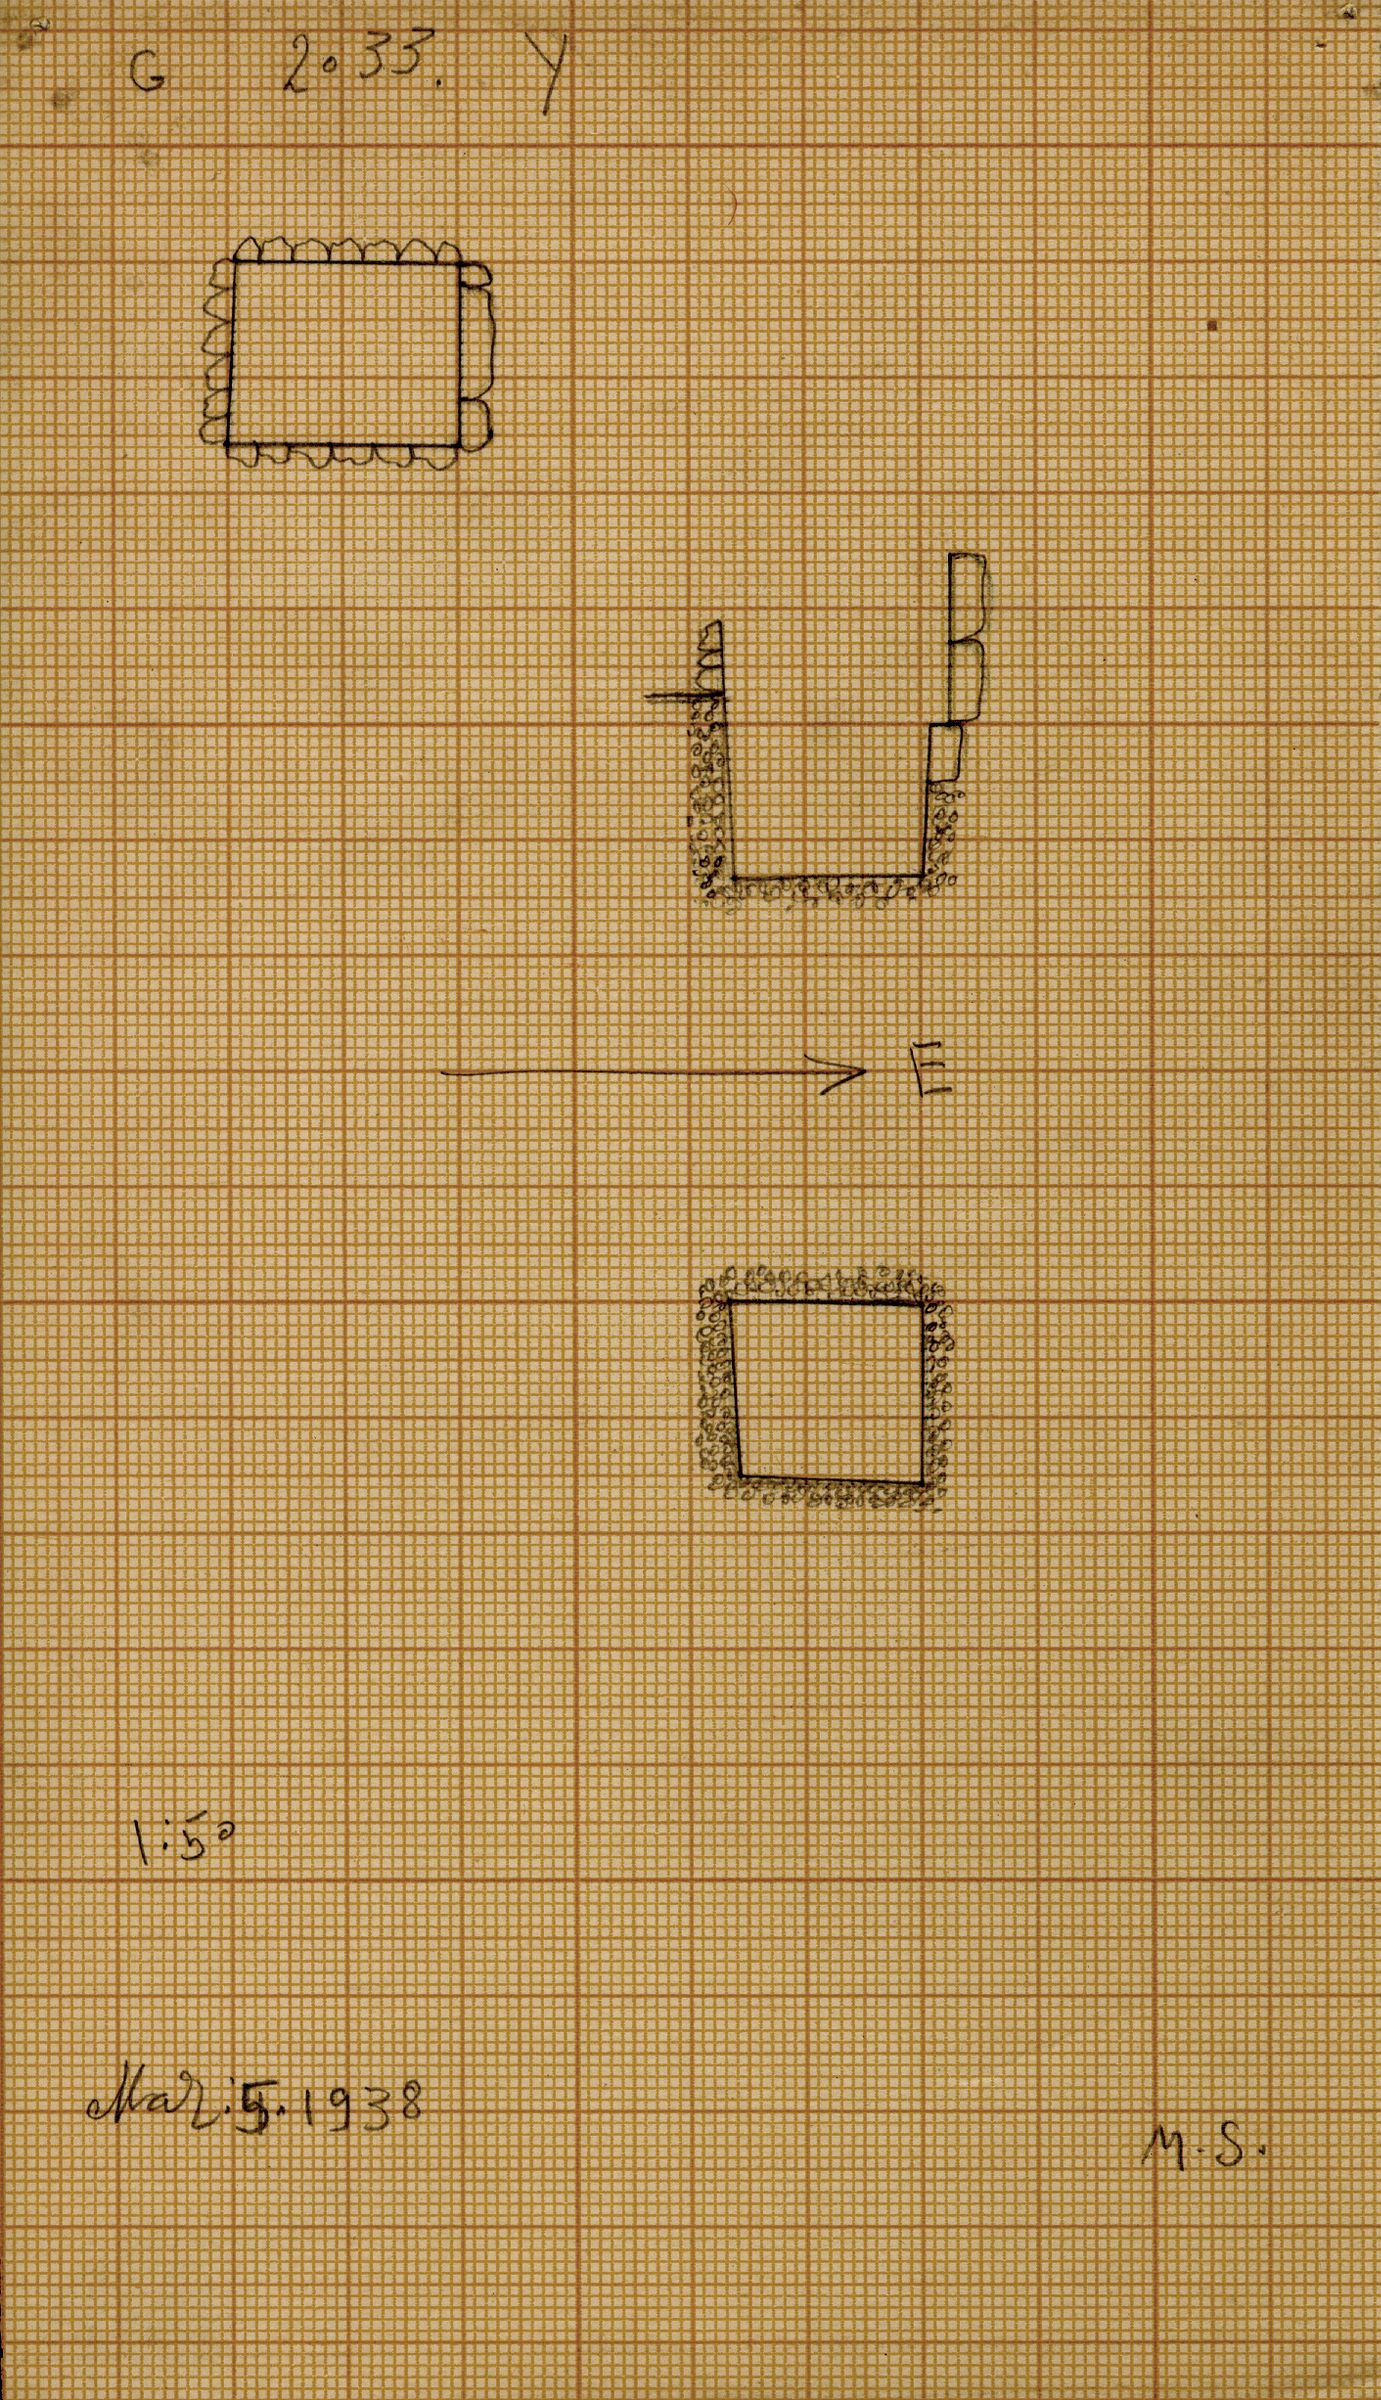 Maps and plans: G 2033, Shaft Y